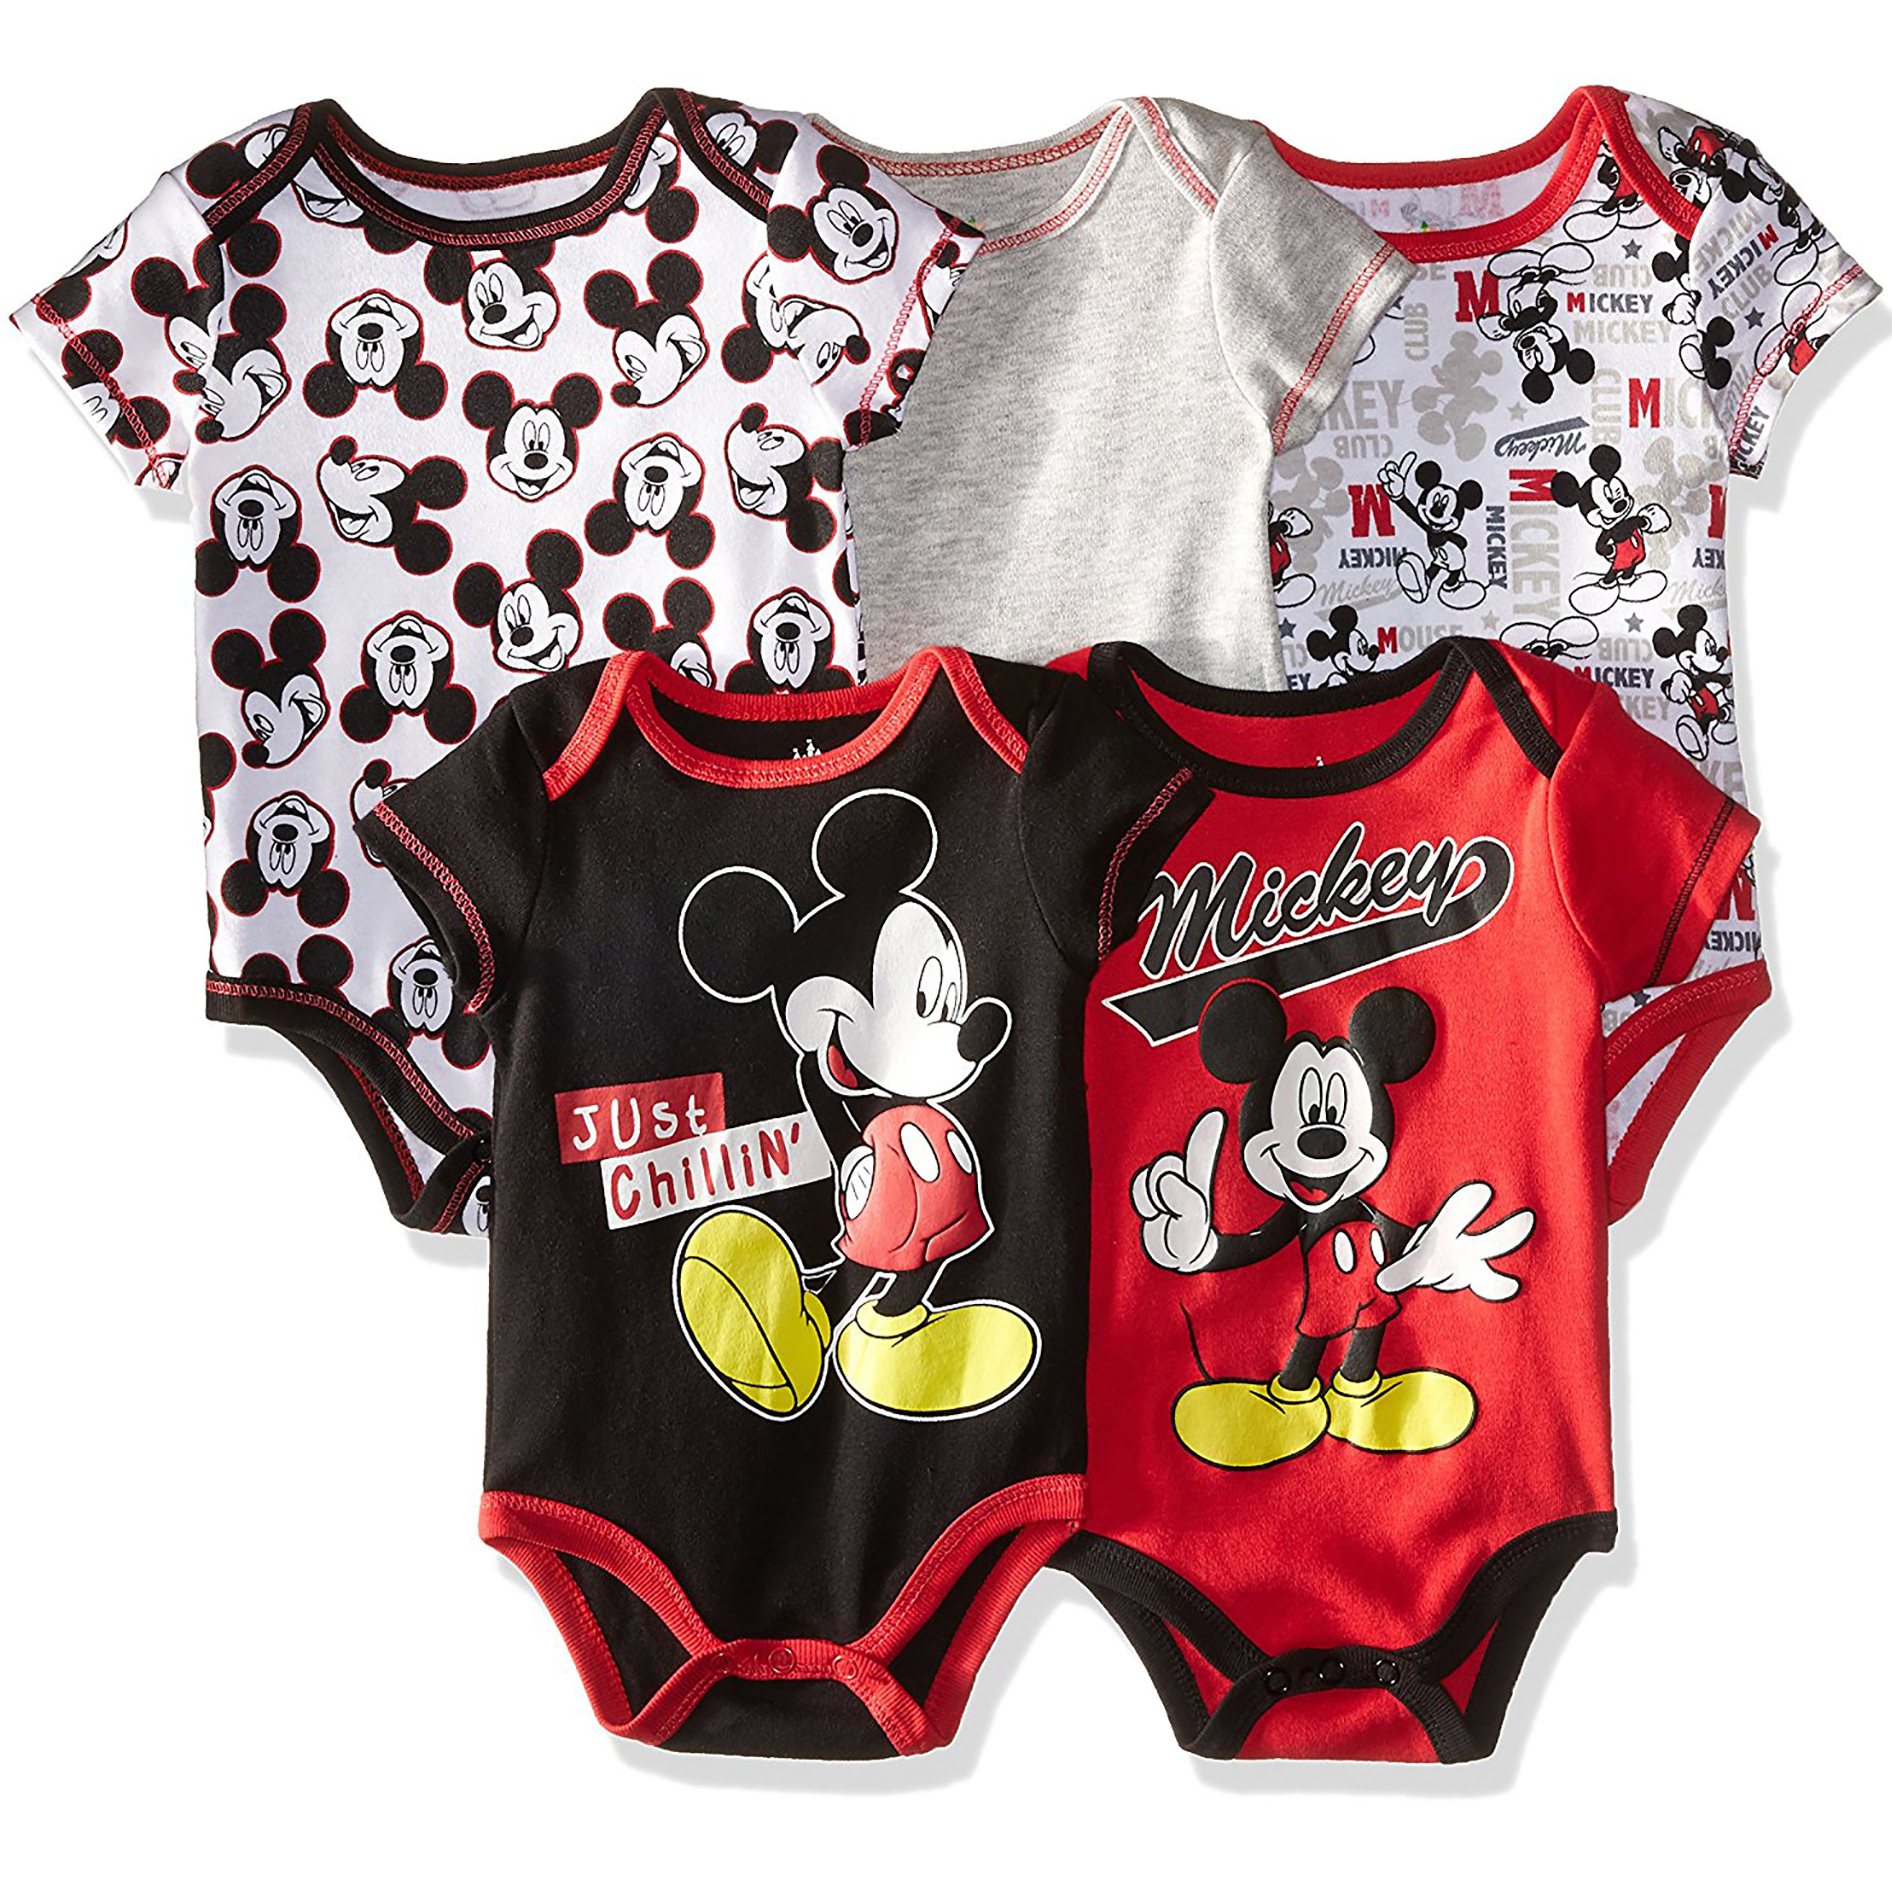 Disney Mickey Mouse Baby Boys' Onesies - 5 Pack Bodysuit (0-3 Months)